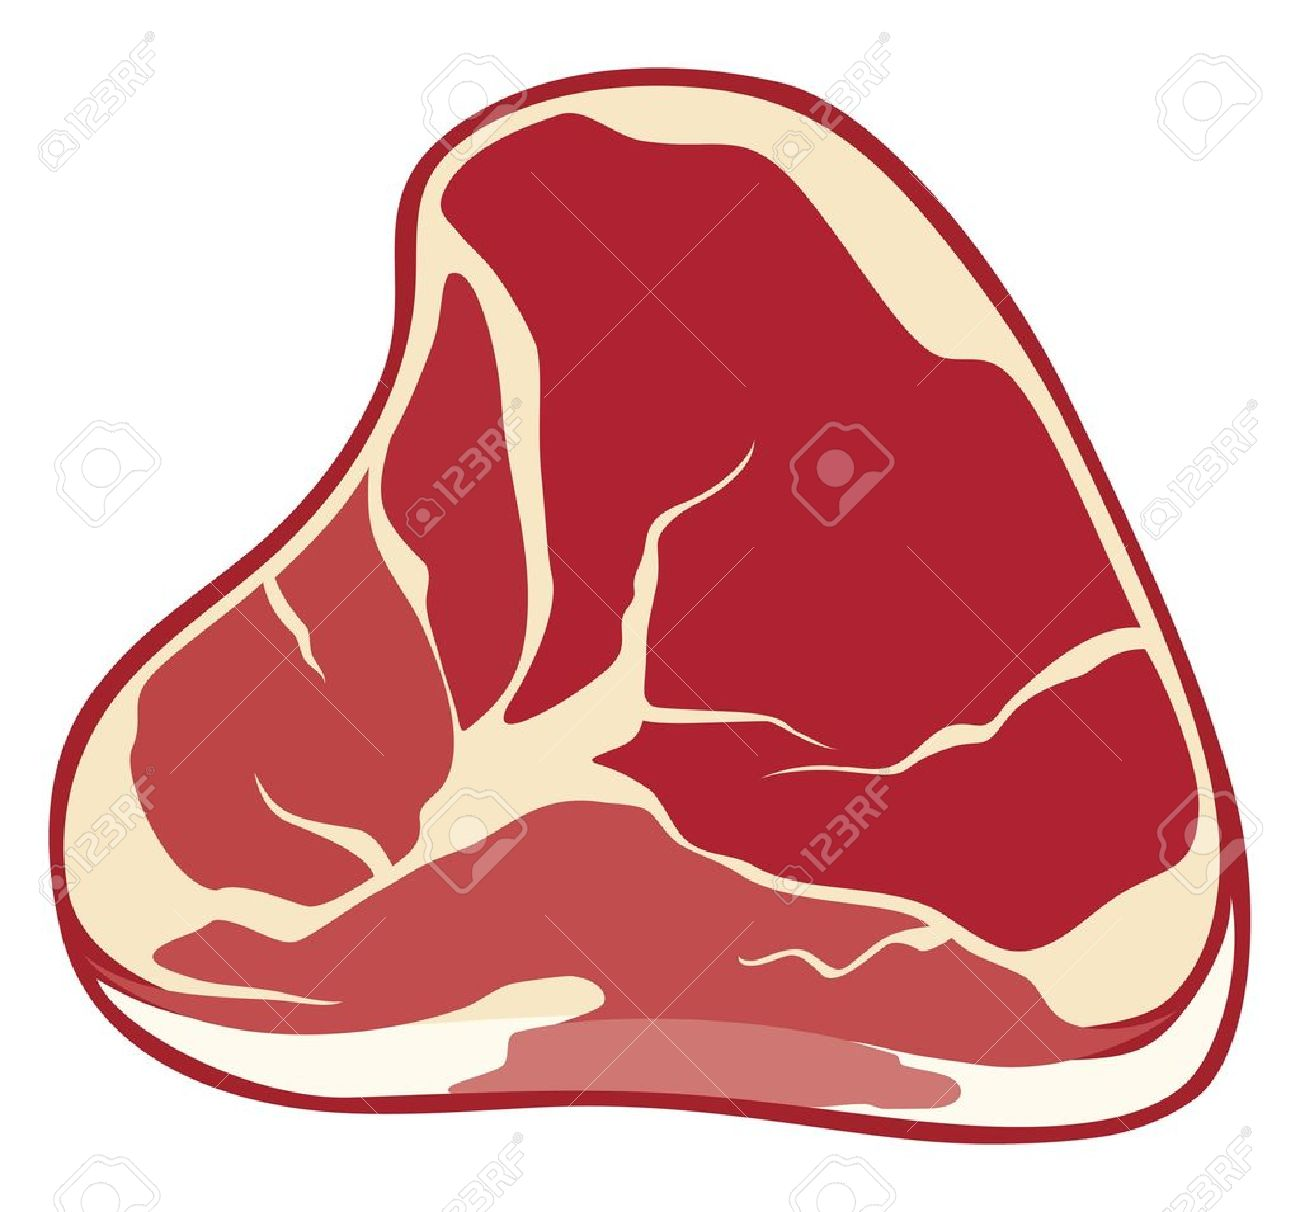 hight resolution of beef clipart